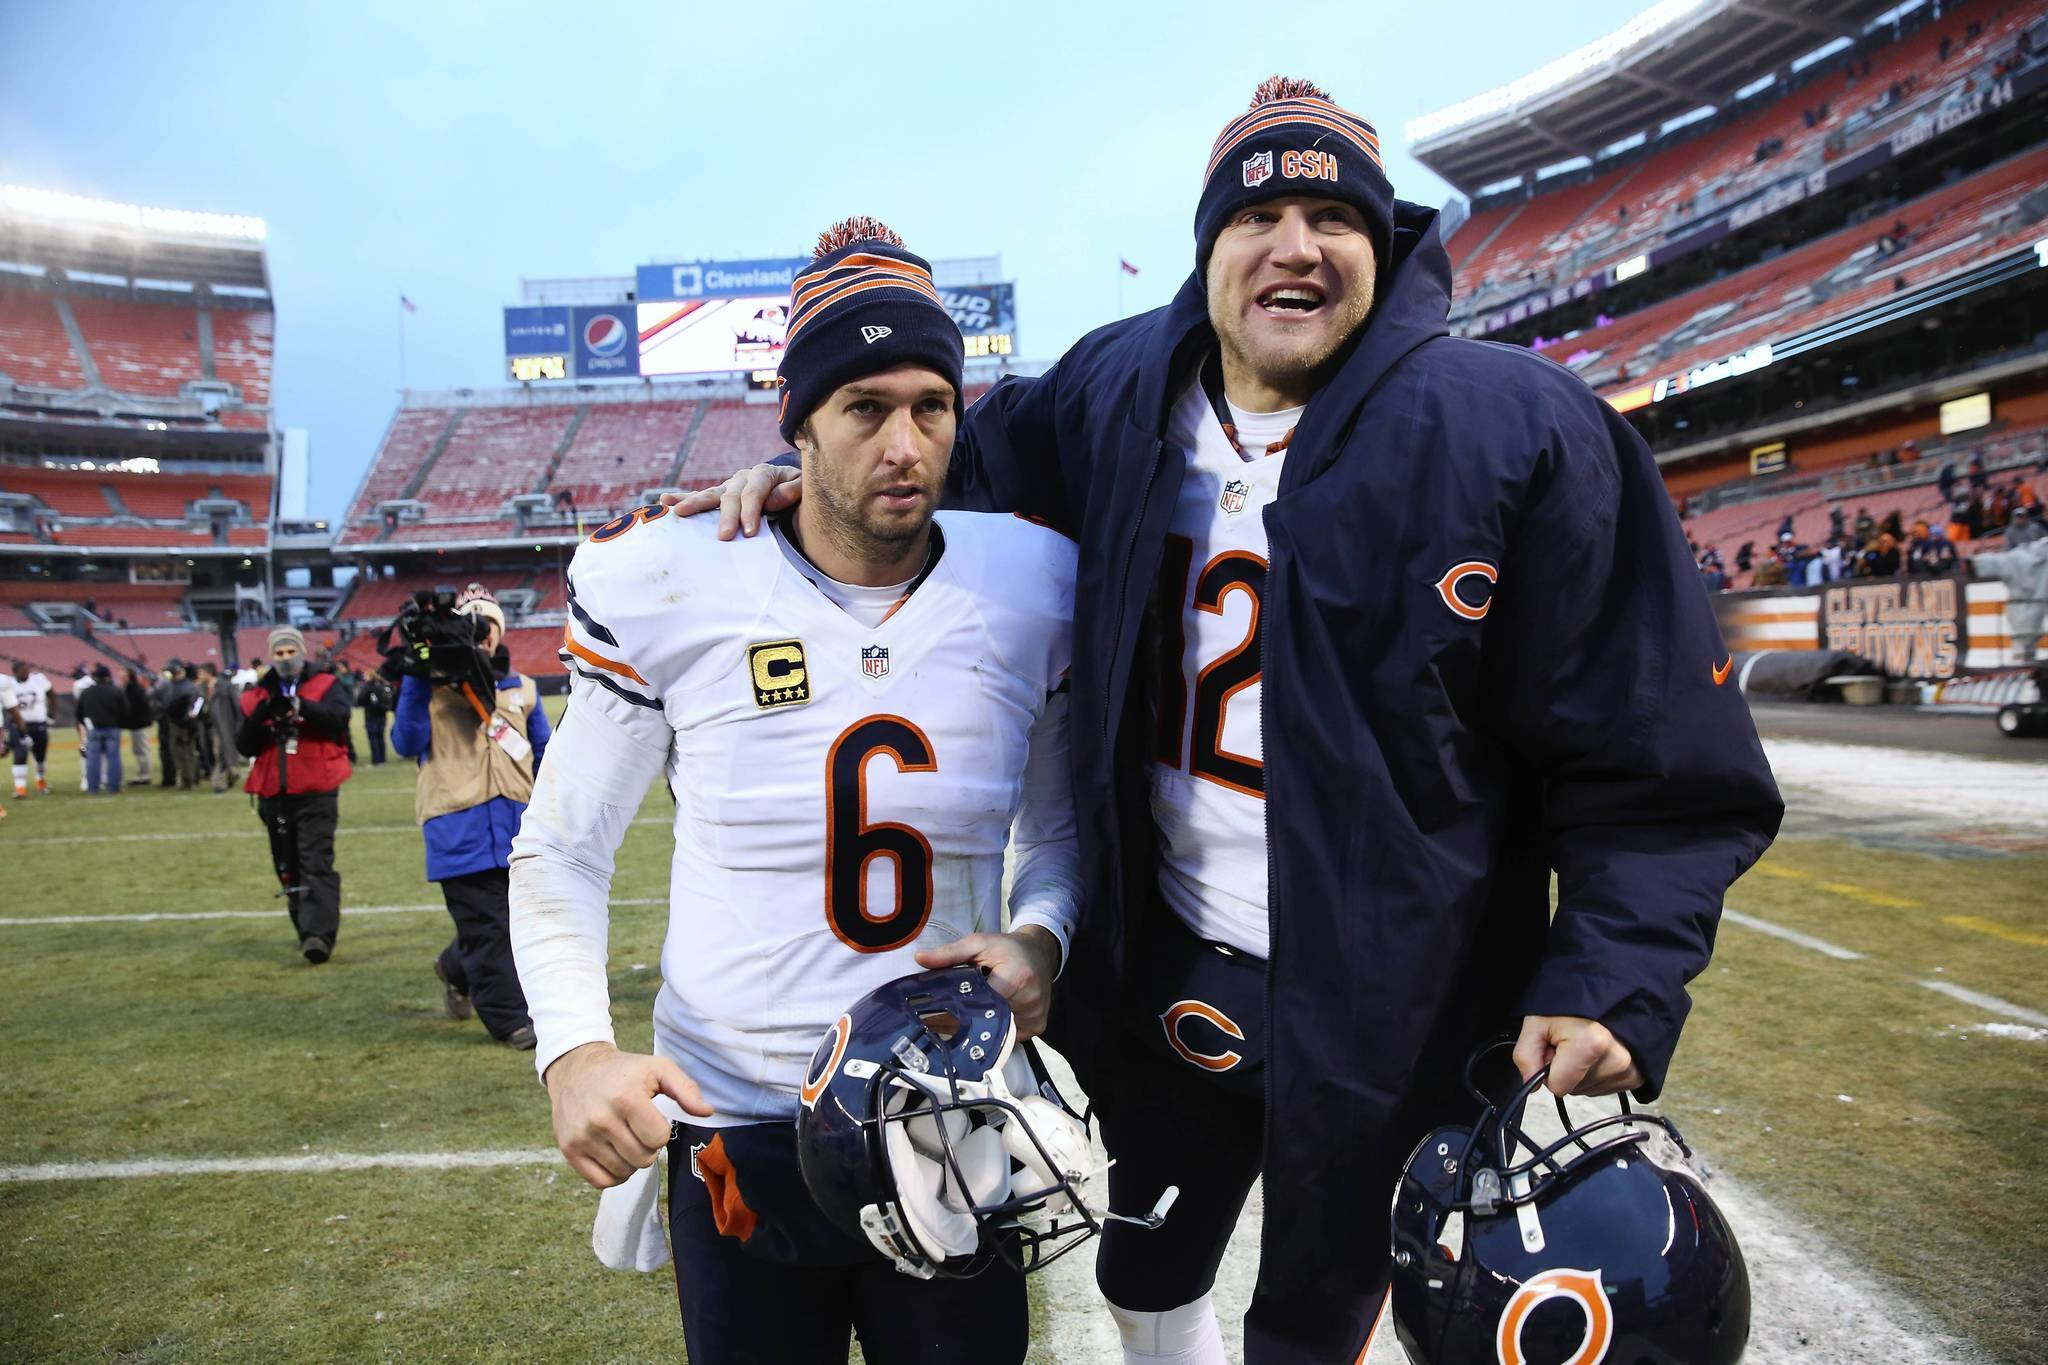 Bears quarterbacks Jay Cutler and Josh McCown leave the field together after a win over the Browns.